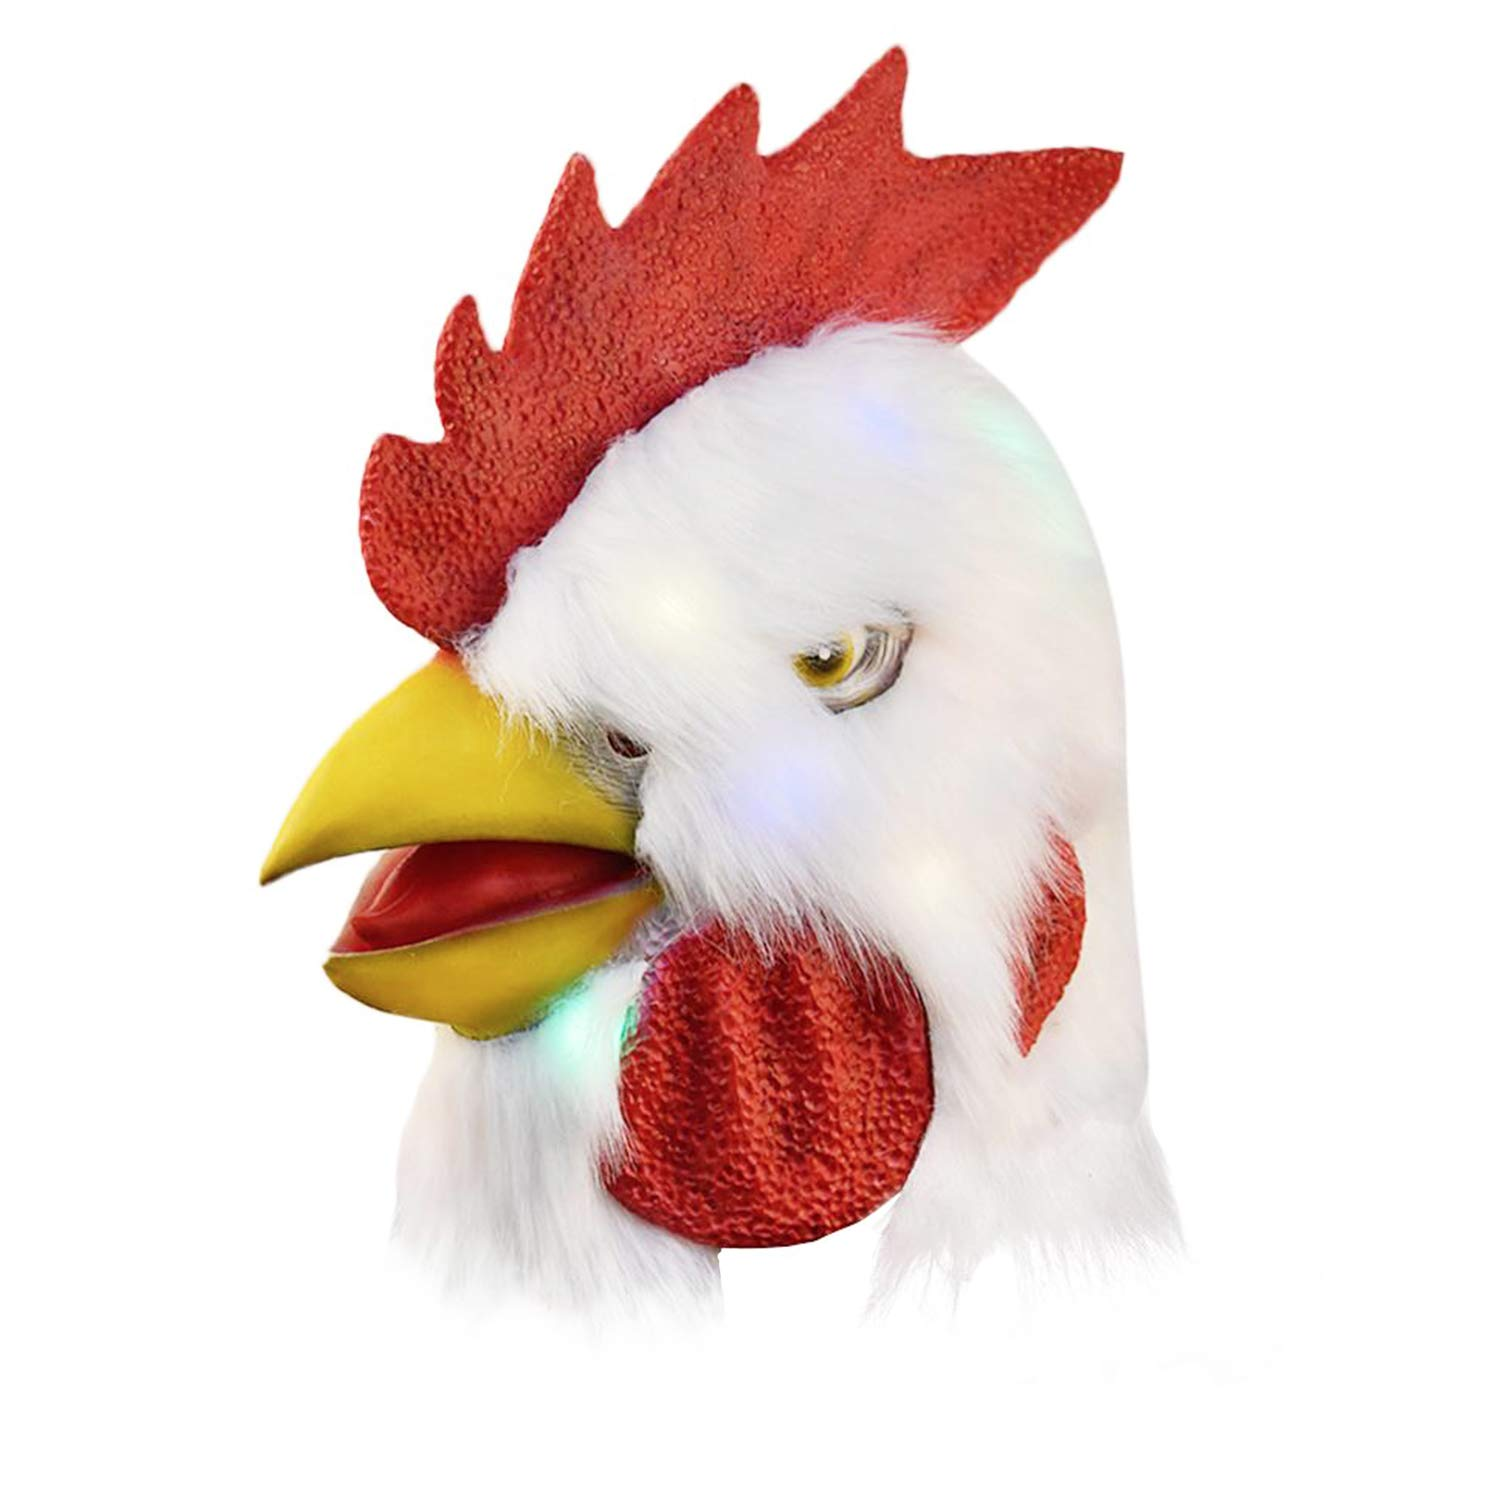 Chicken Mask Halloween Rooster Masks Animal Costumes Miami Head Mask For Adults Buy Online In Congo At Congo Desertcart Com Productid 166352402 Bulk buy chicken masks online from chinese suppliers on dhgate.com. chicken mask halloween rooster masks